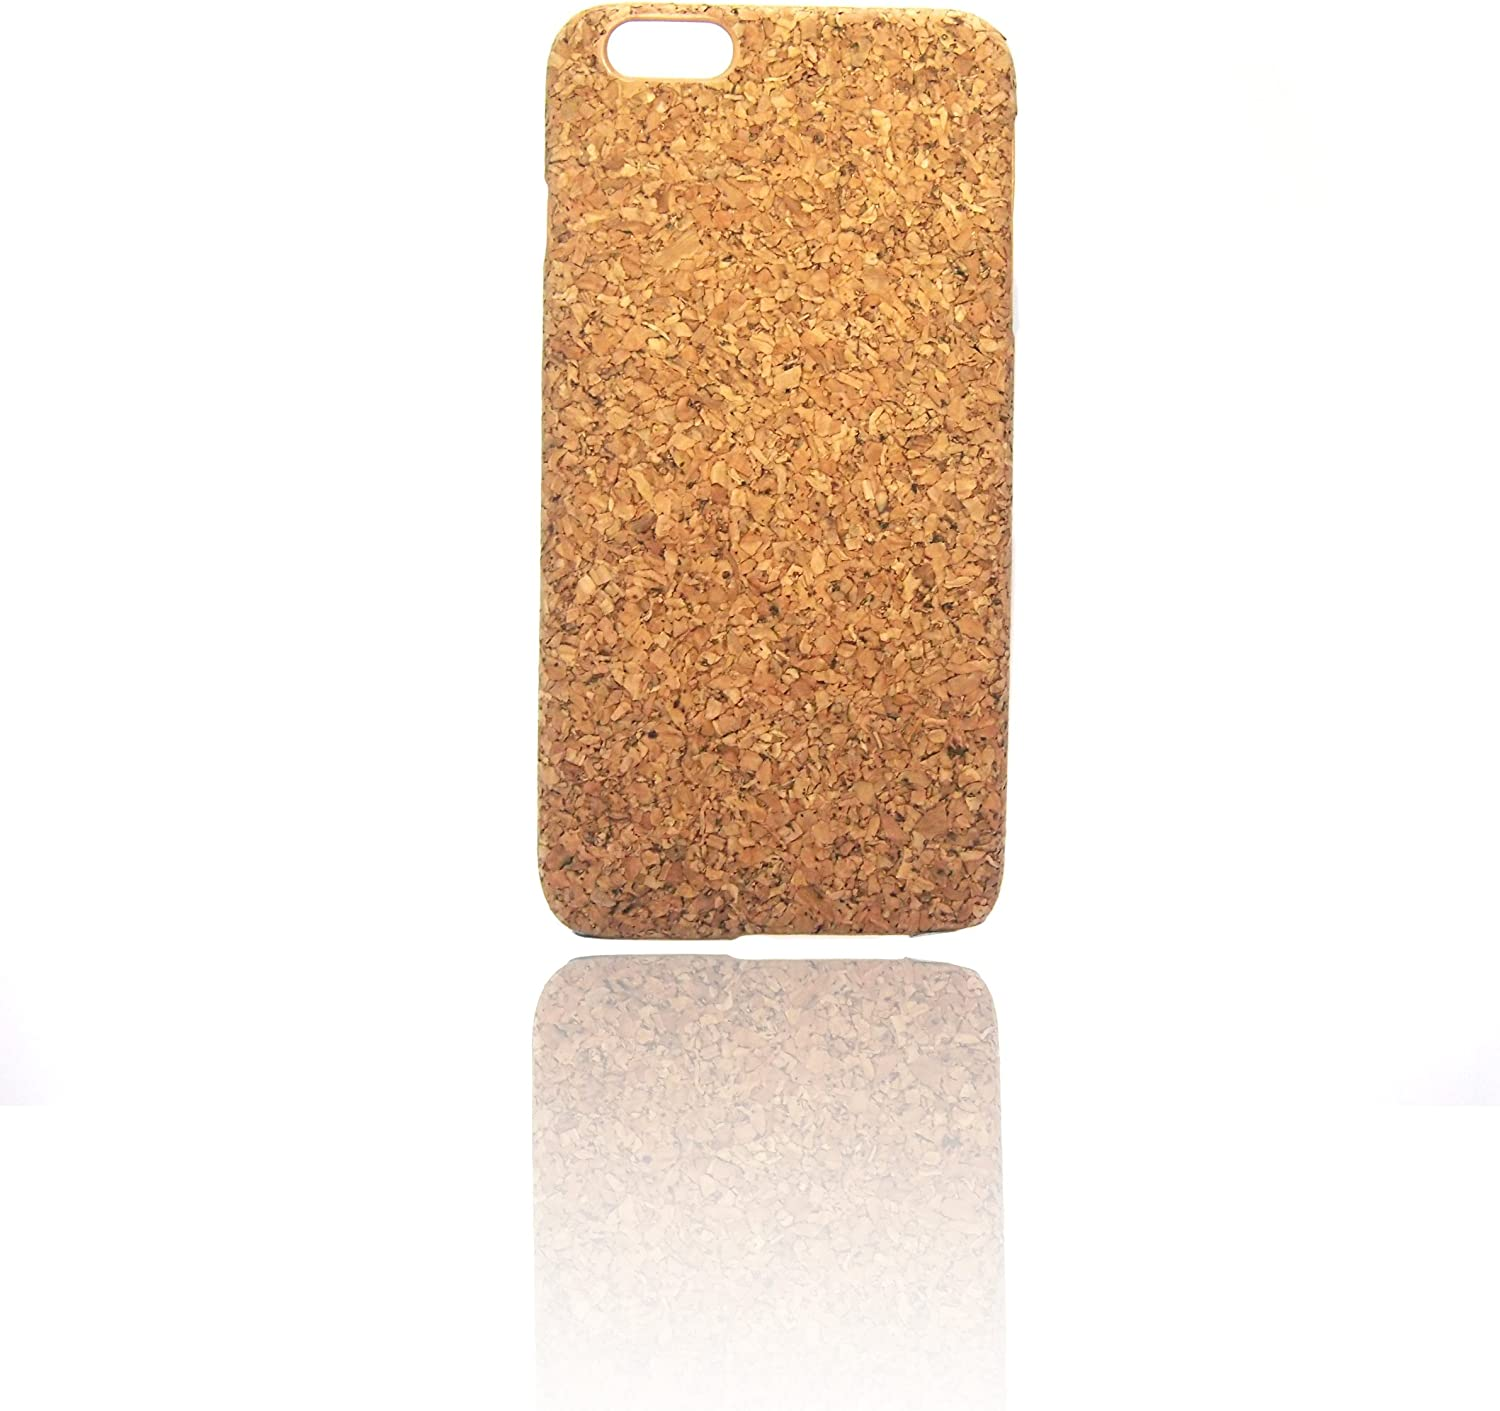 naturaism Cork iPhone 6S / iPhone 6 Case 4.7 Inch Natural Wood Cork 1-Piece Hard Case Cover (iPhone 6S)